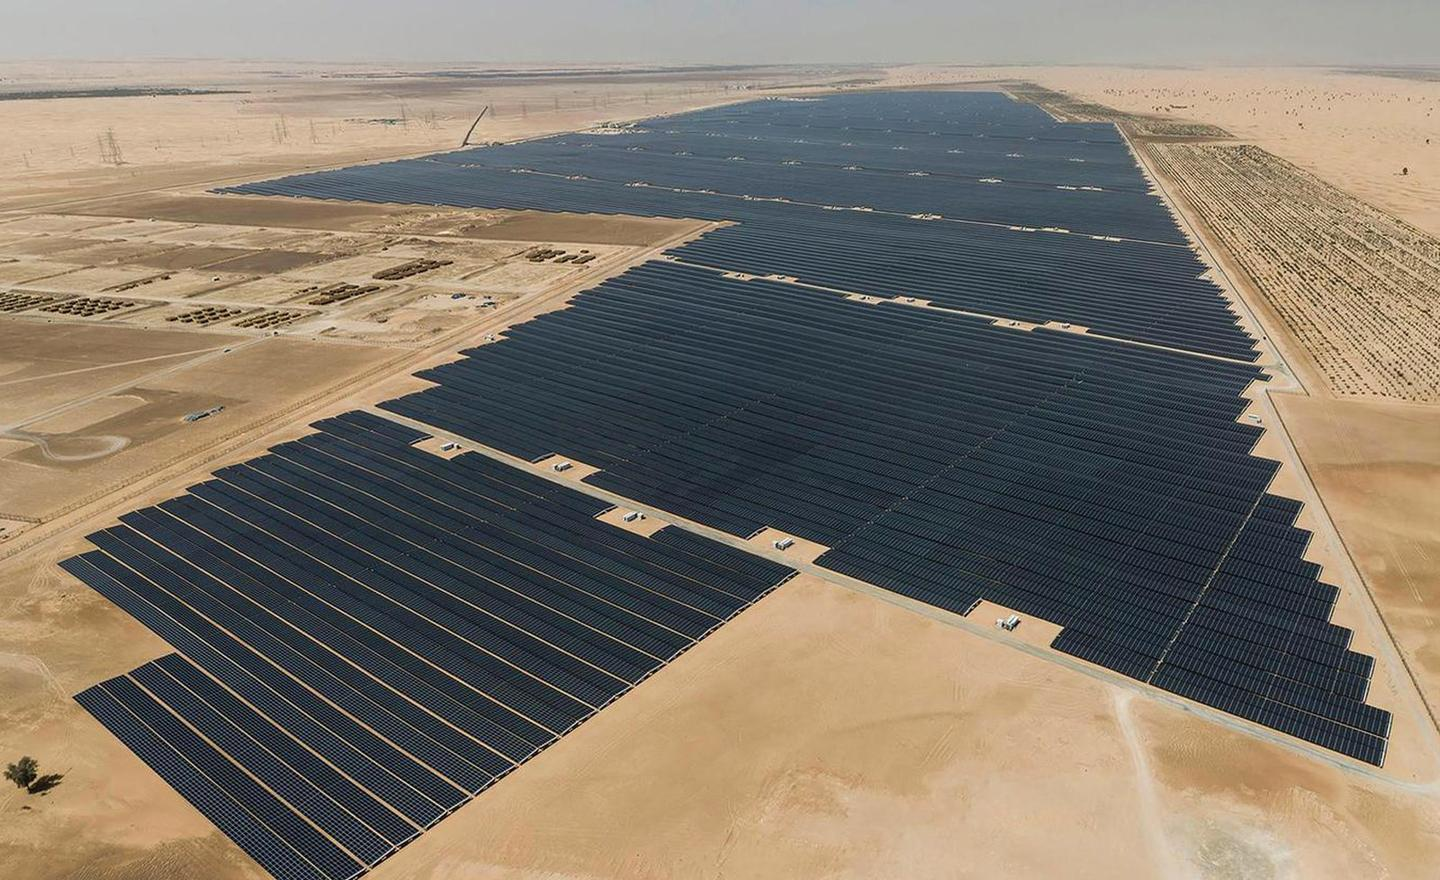 The Noor Abu Dhabi single-site solar plant, which is claimed to be the largest in the world  with a production capacity of nearly 1.2 GW